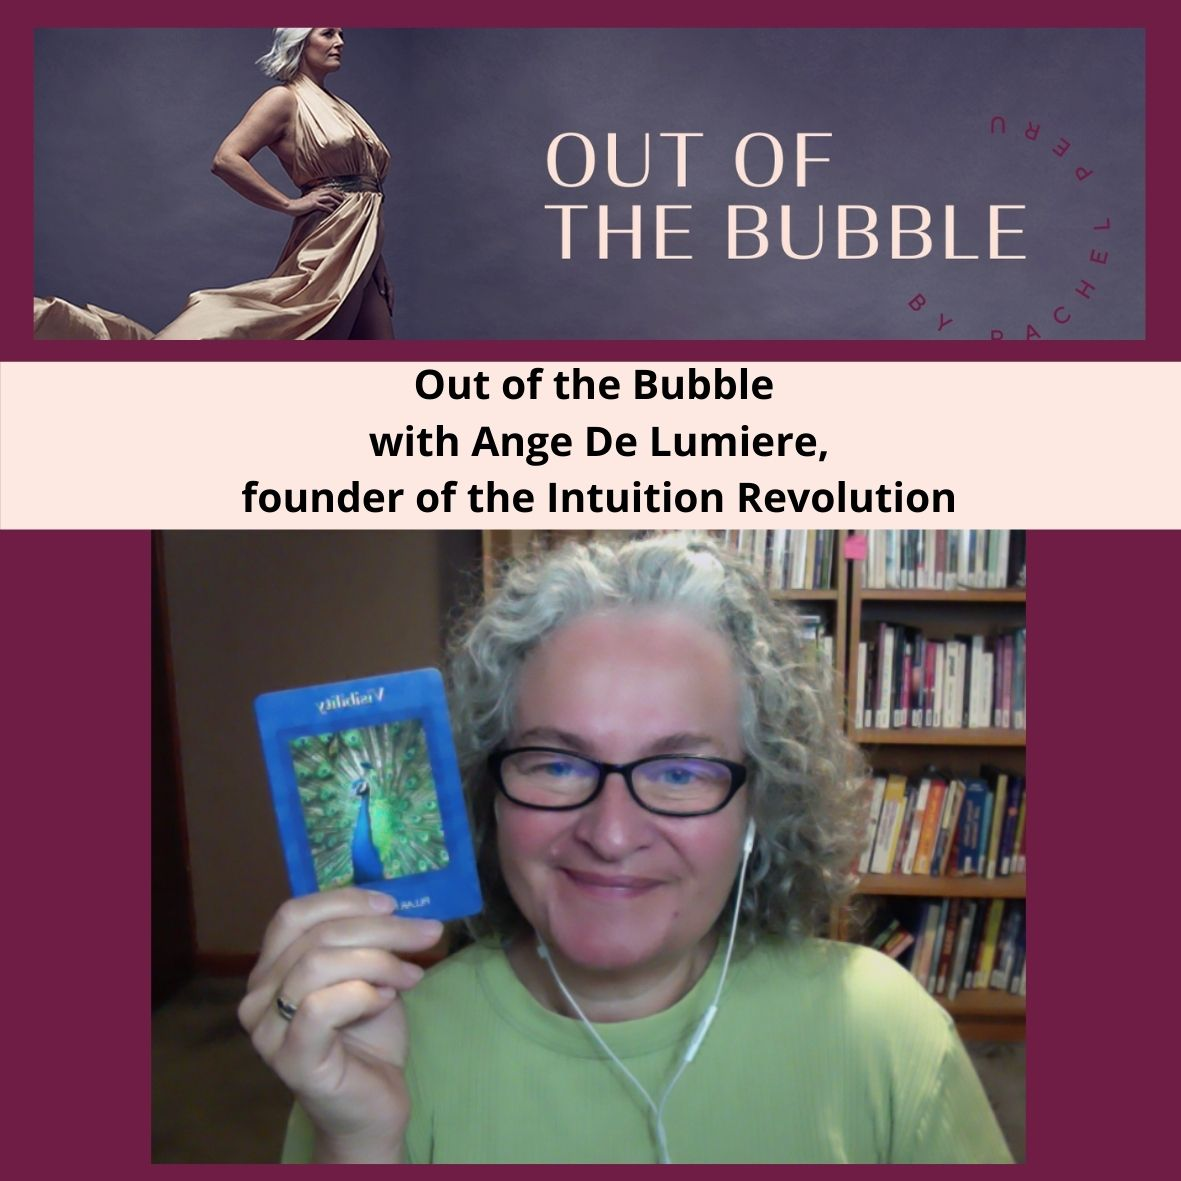 Ep.73 Out of the Bubble with Ange De Lumiere, founder of the Intuition Revolution.